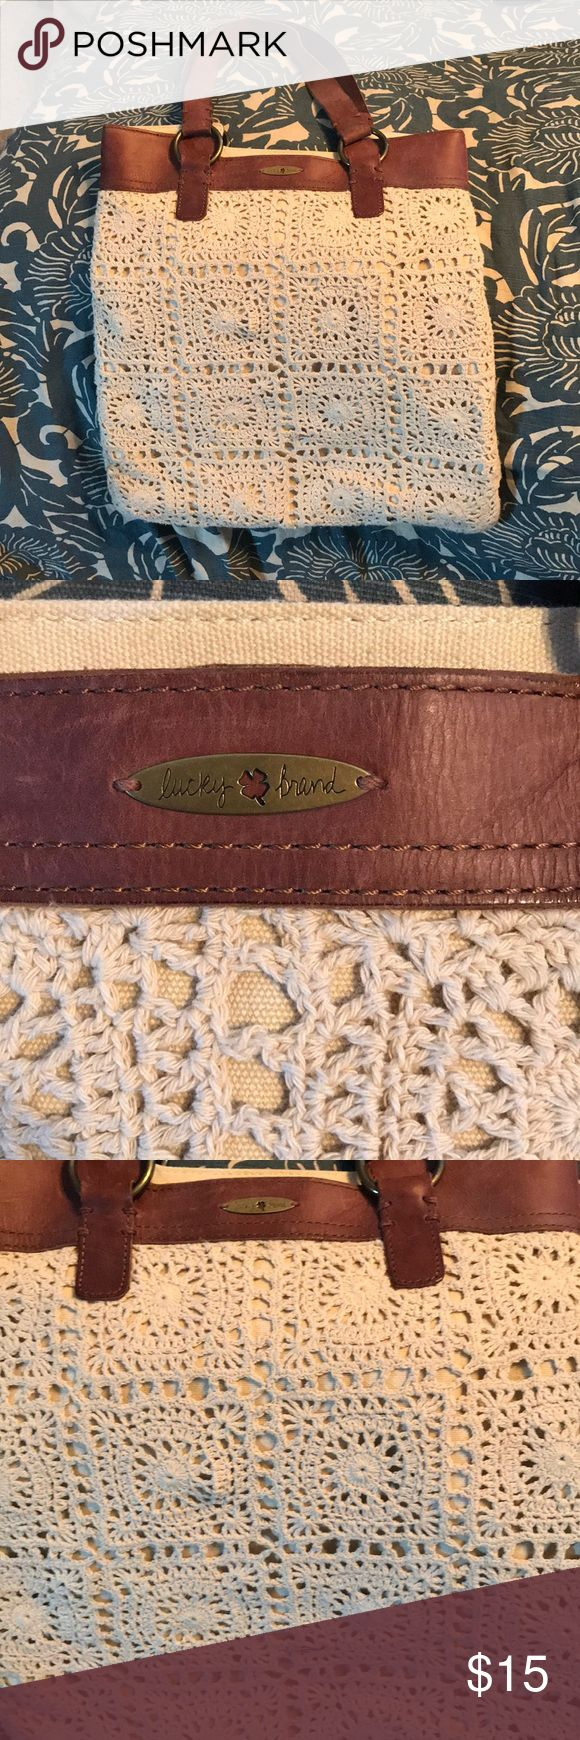 Lucky Brand crochet shoulder bag Cream colored crocheted shoulder bag. Lots of room - big enough to carry a small laptop. Great spring bag. Lucky Brand Bags Shoulder Bags